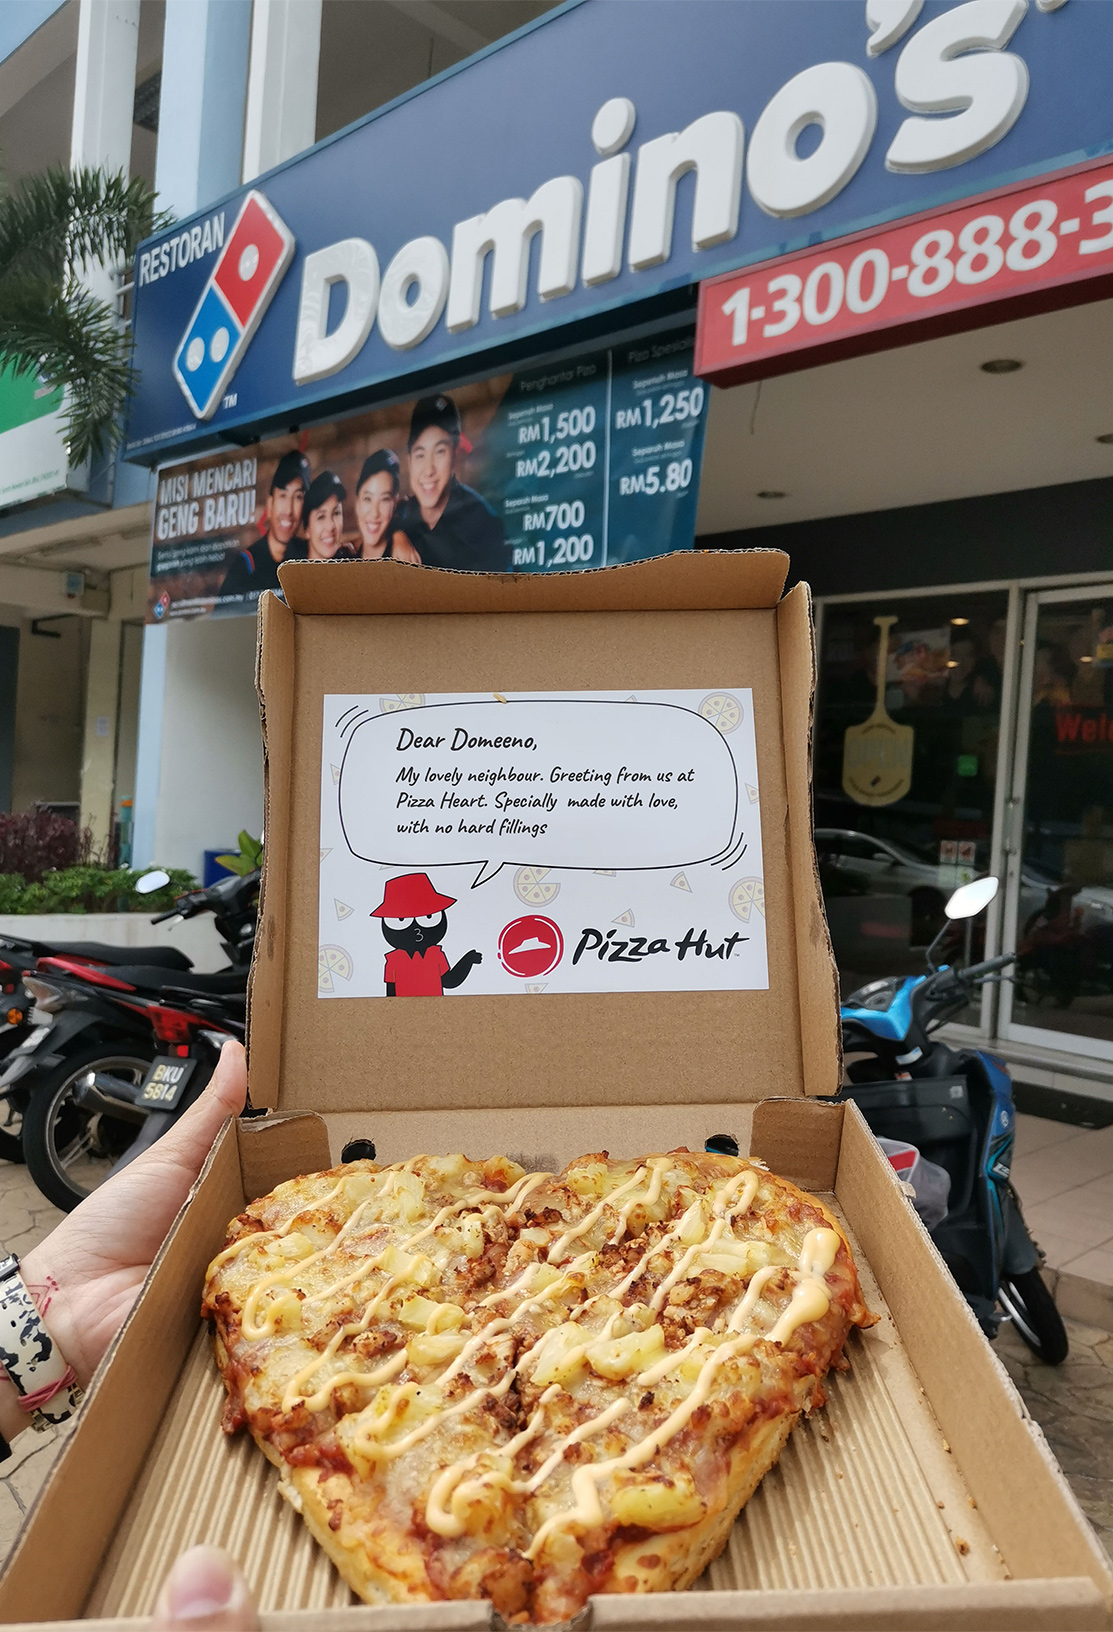 Delivery to Domino's